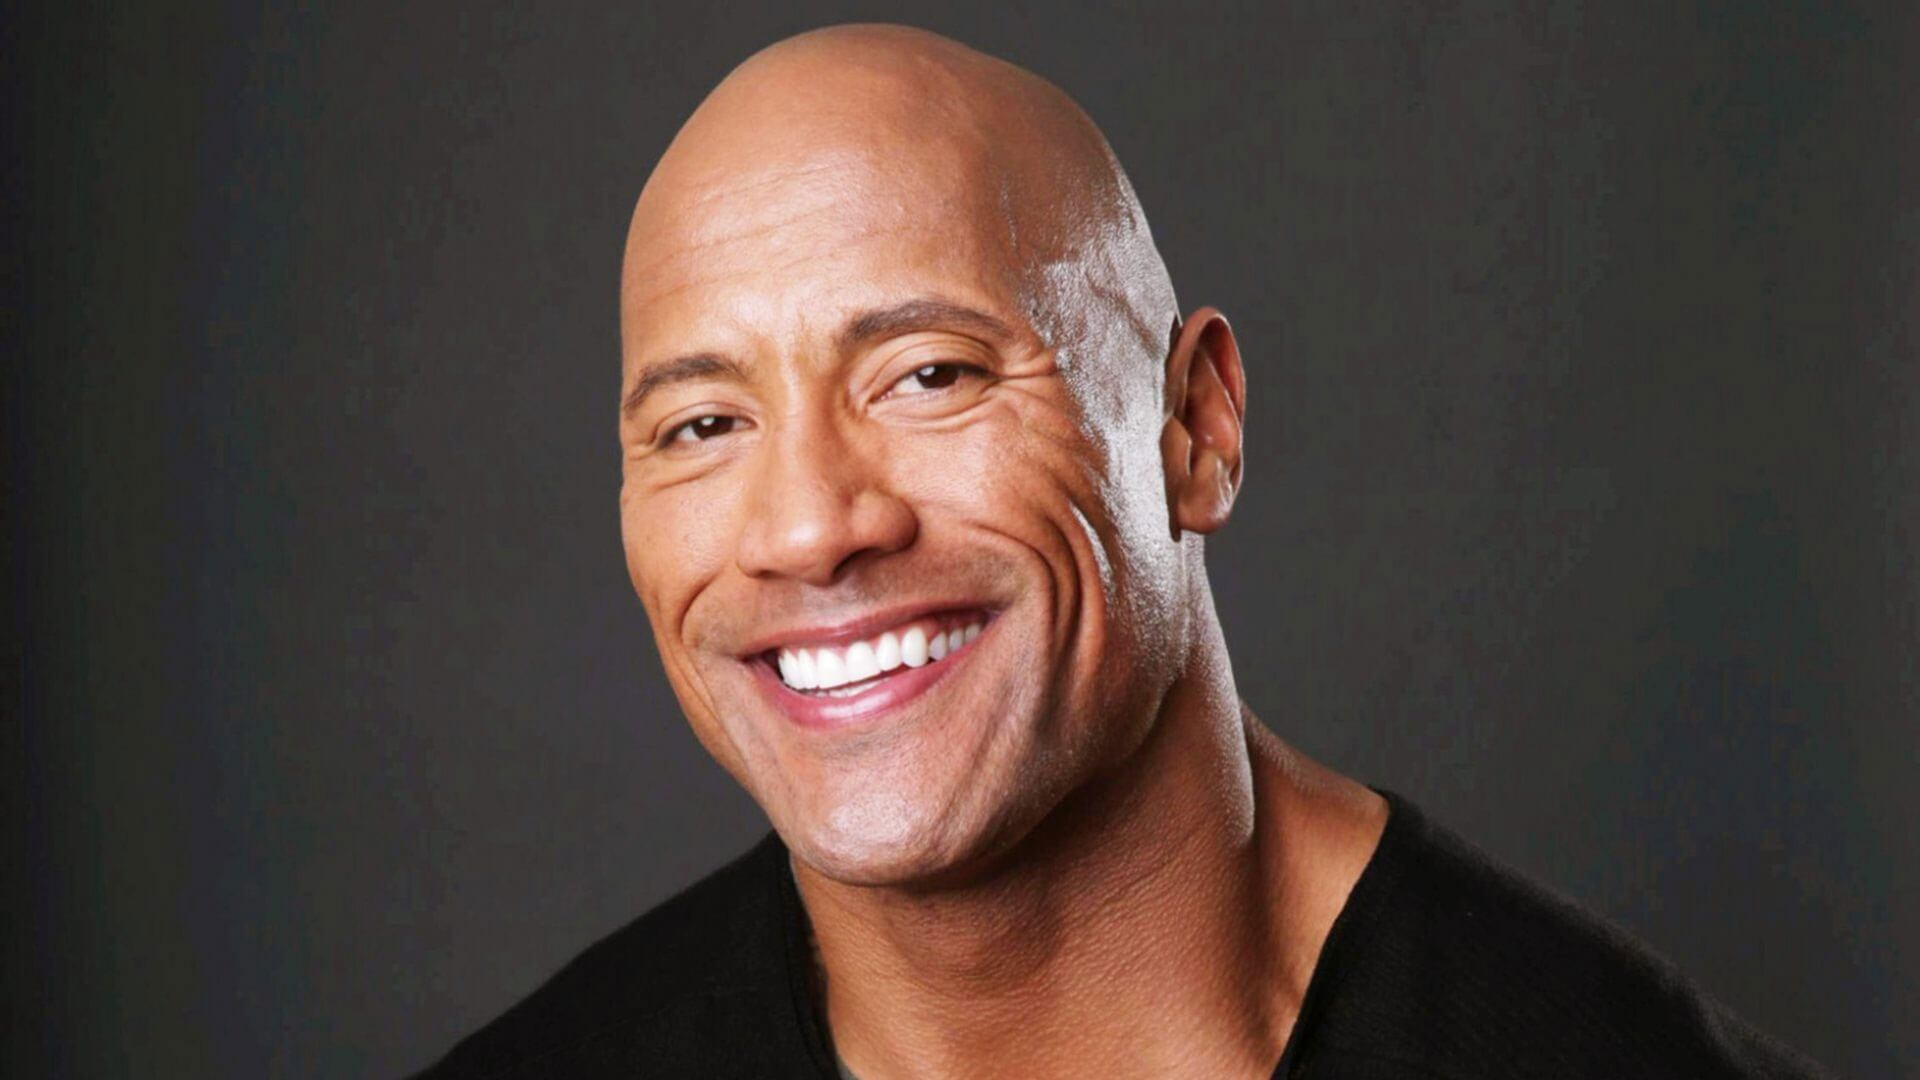 Lessons You Can Learn from the Rock and Arnold Schwarzenegger